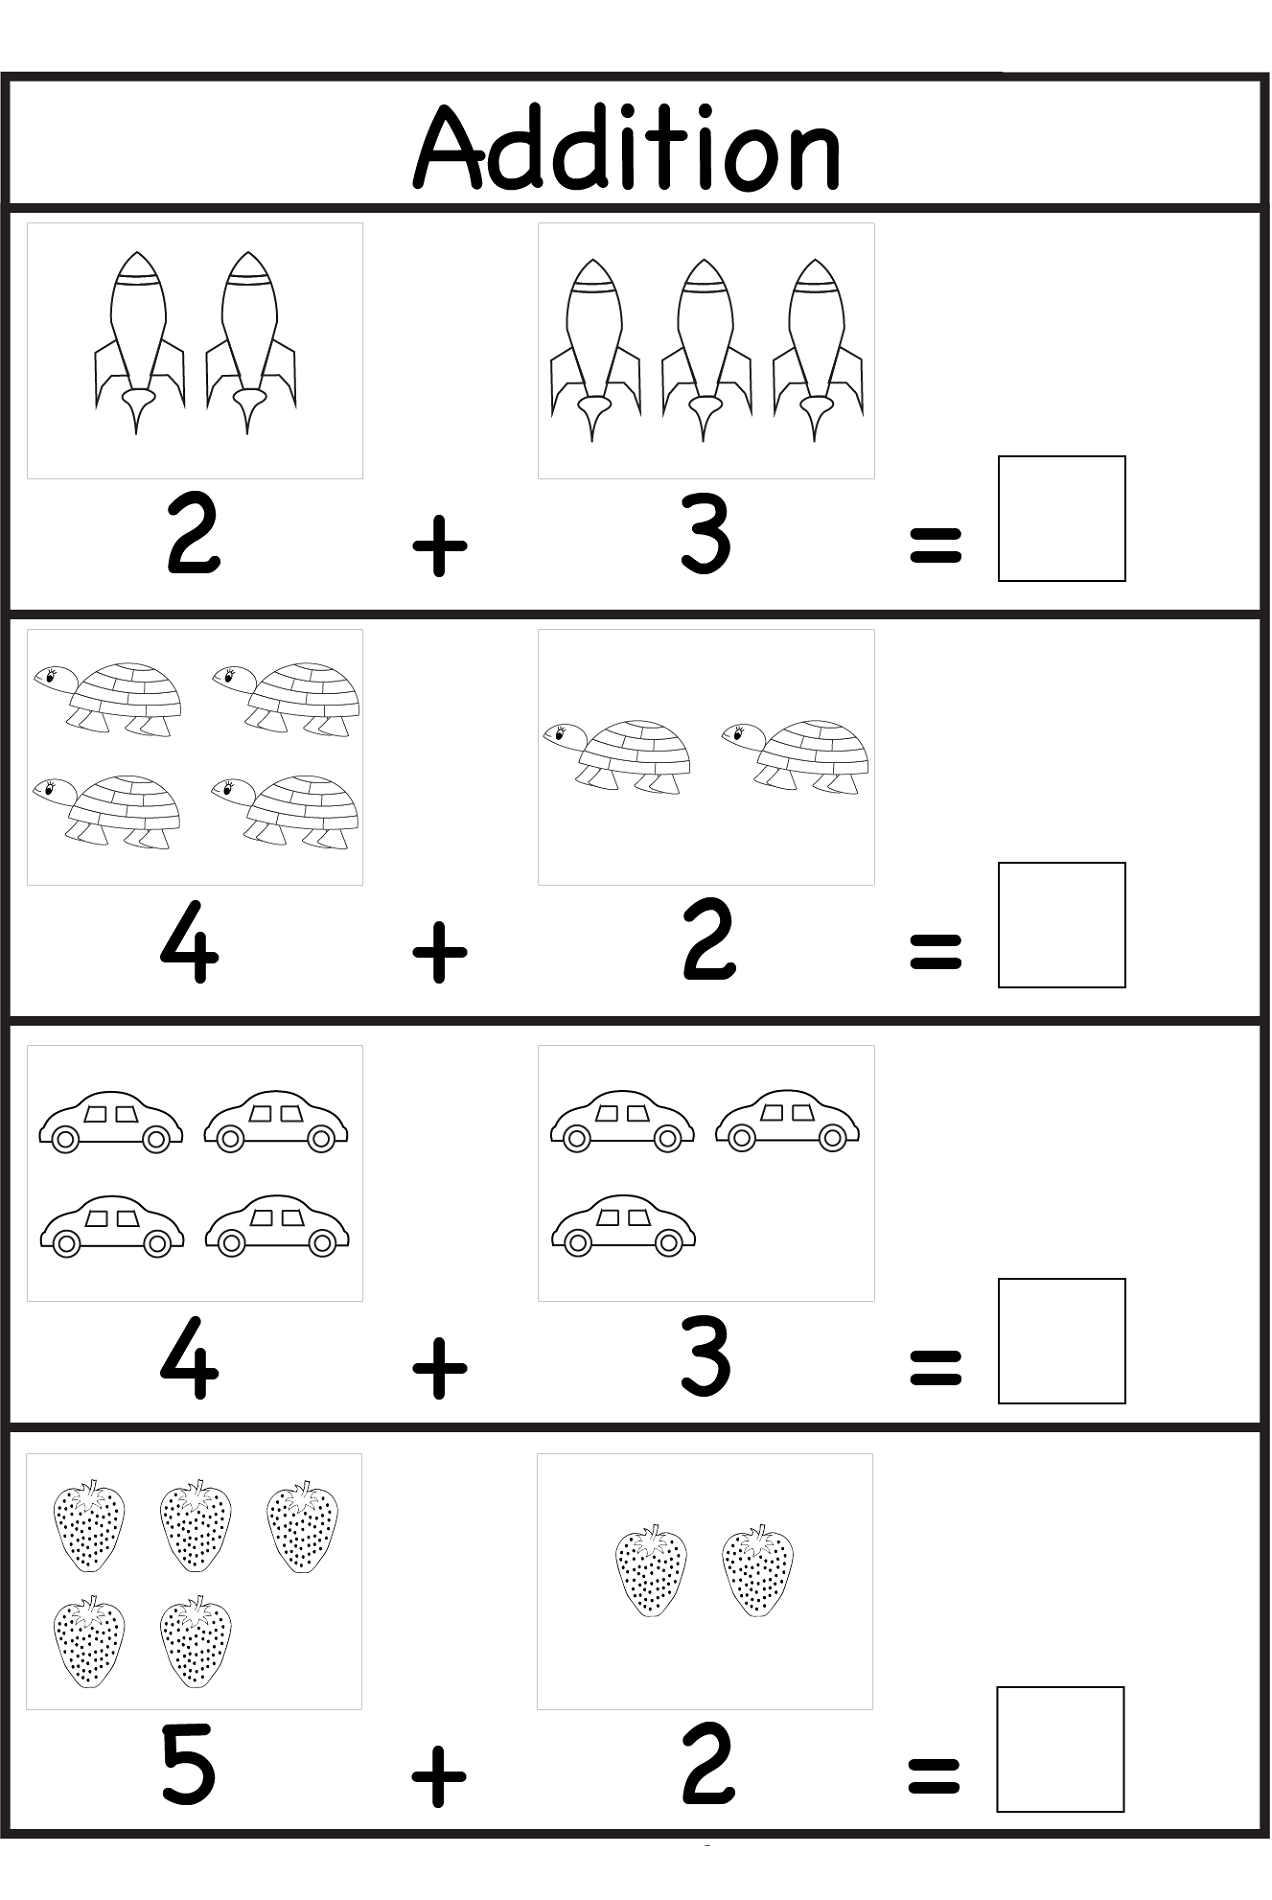 Worksheets Worksheets For Three Year Olds worksheets for 3 years old kids activity shelter year olds addition